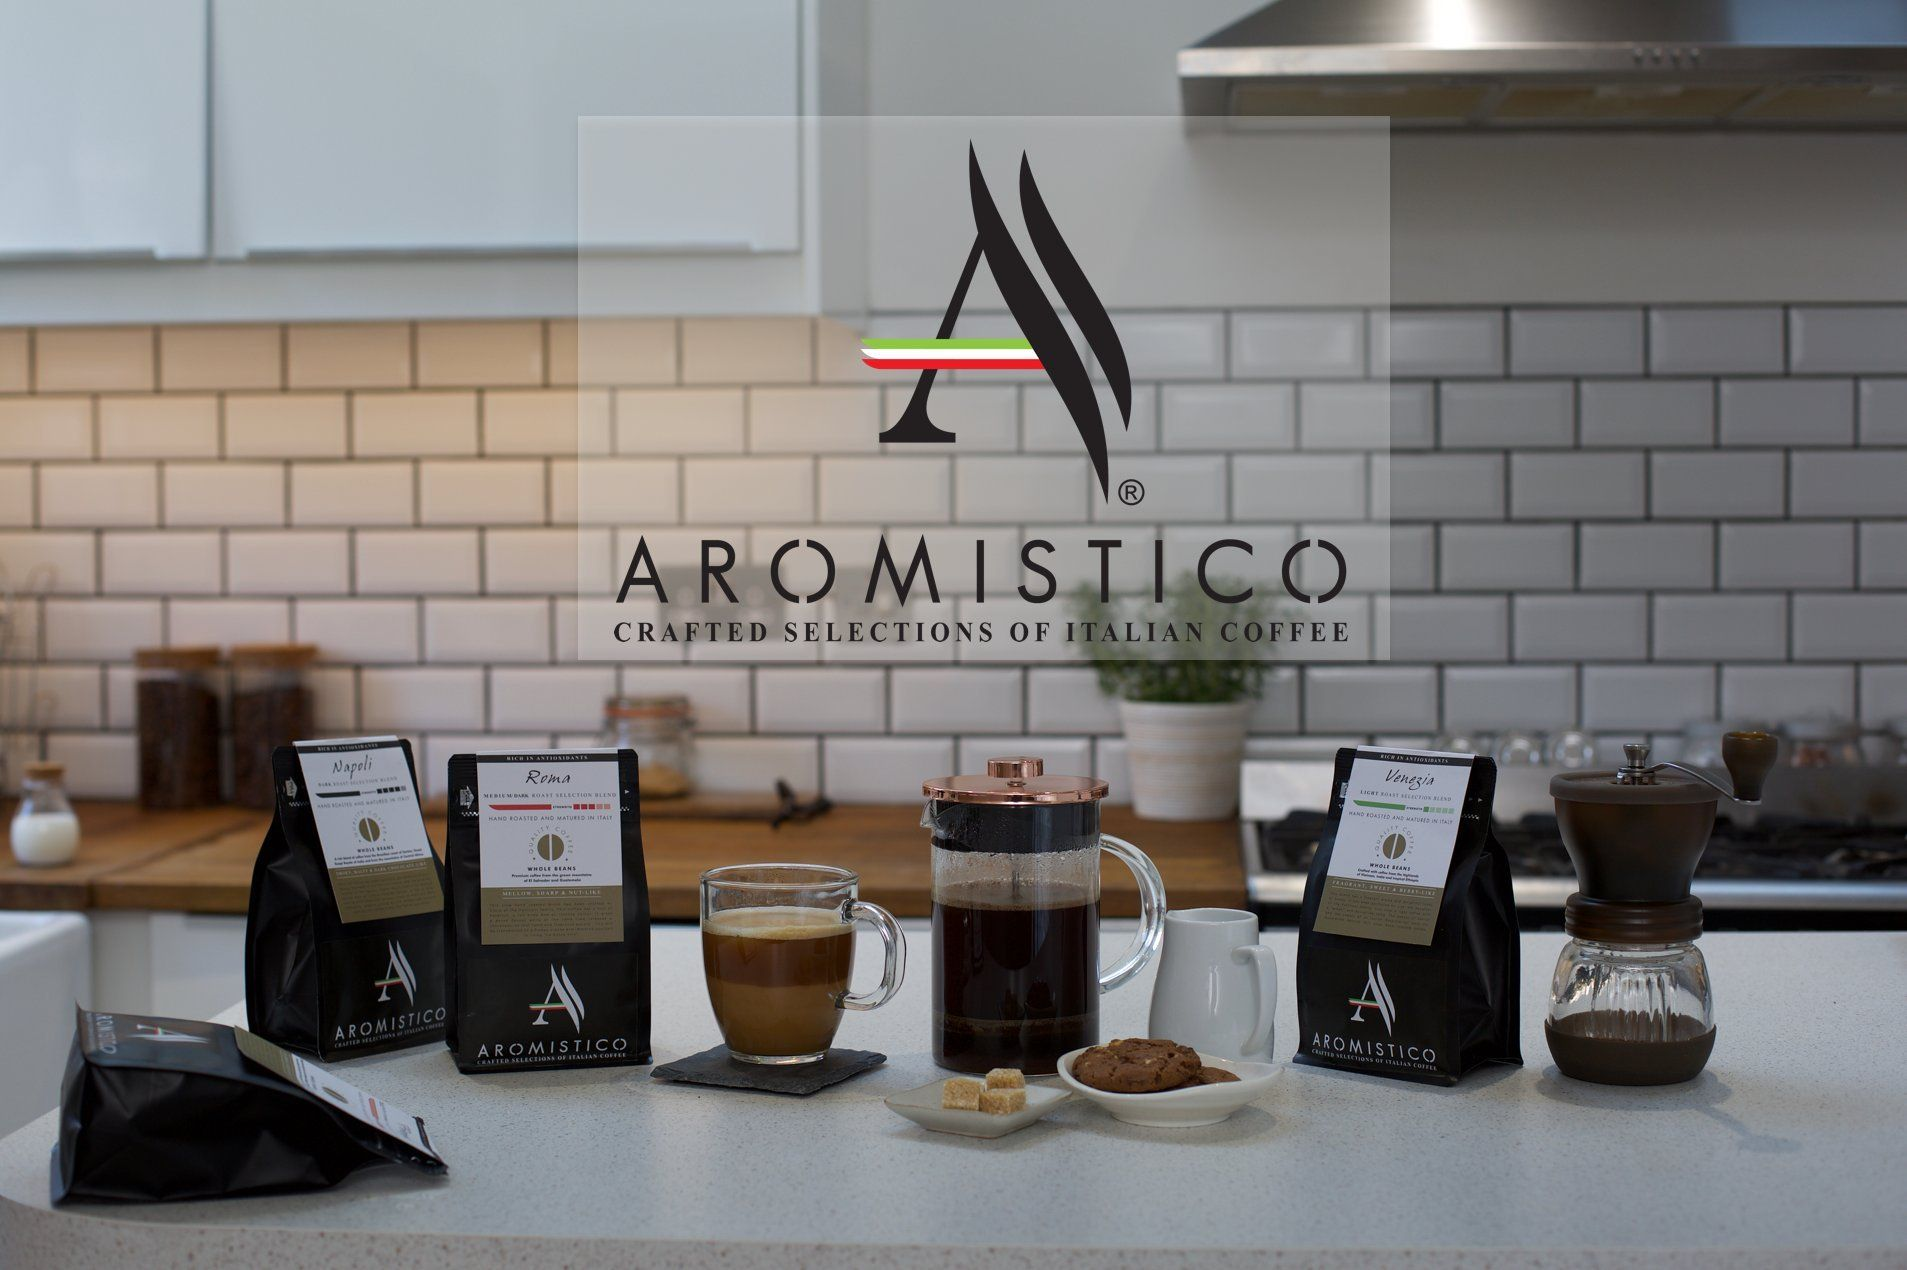 AROMISTICO COFFEE VARIETY CLASSIC COFFEE GIFT SET HAMPER